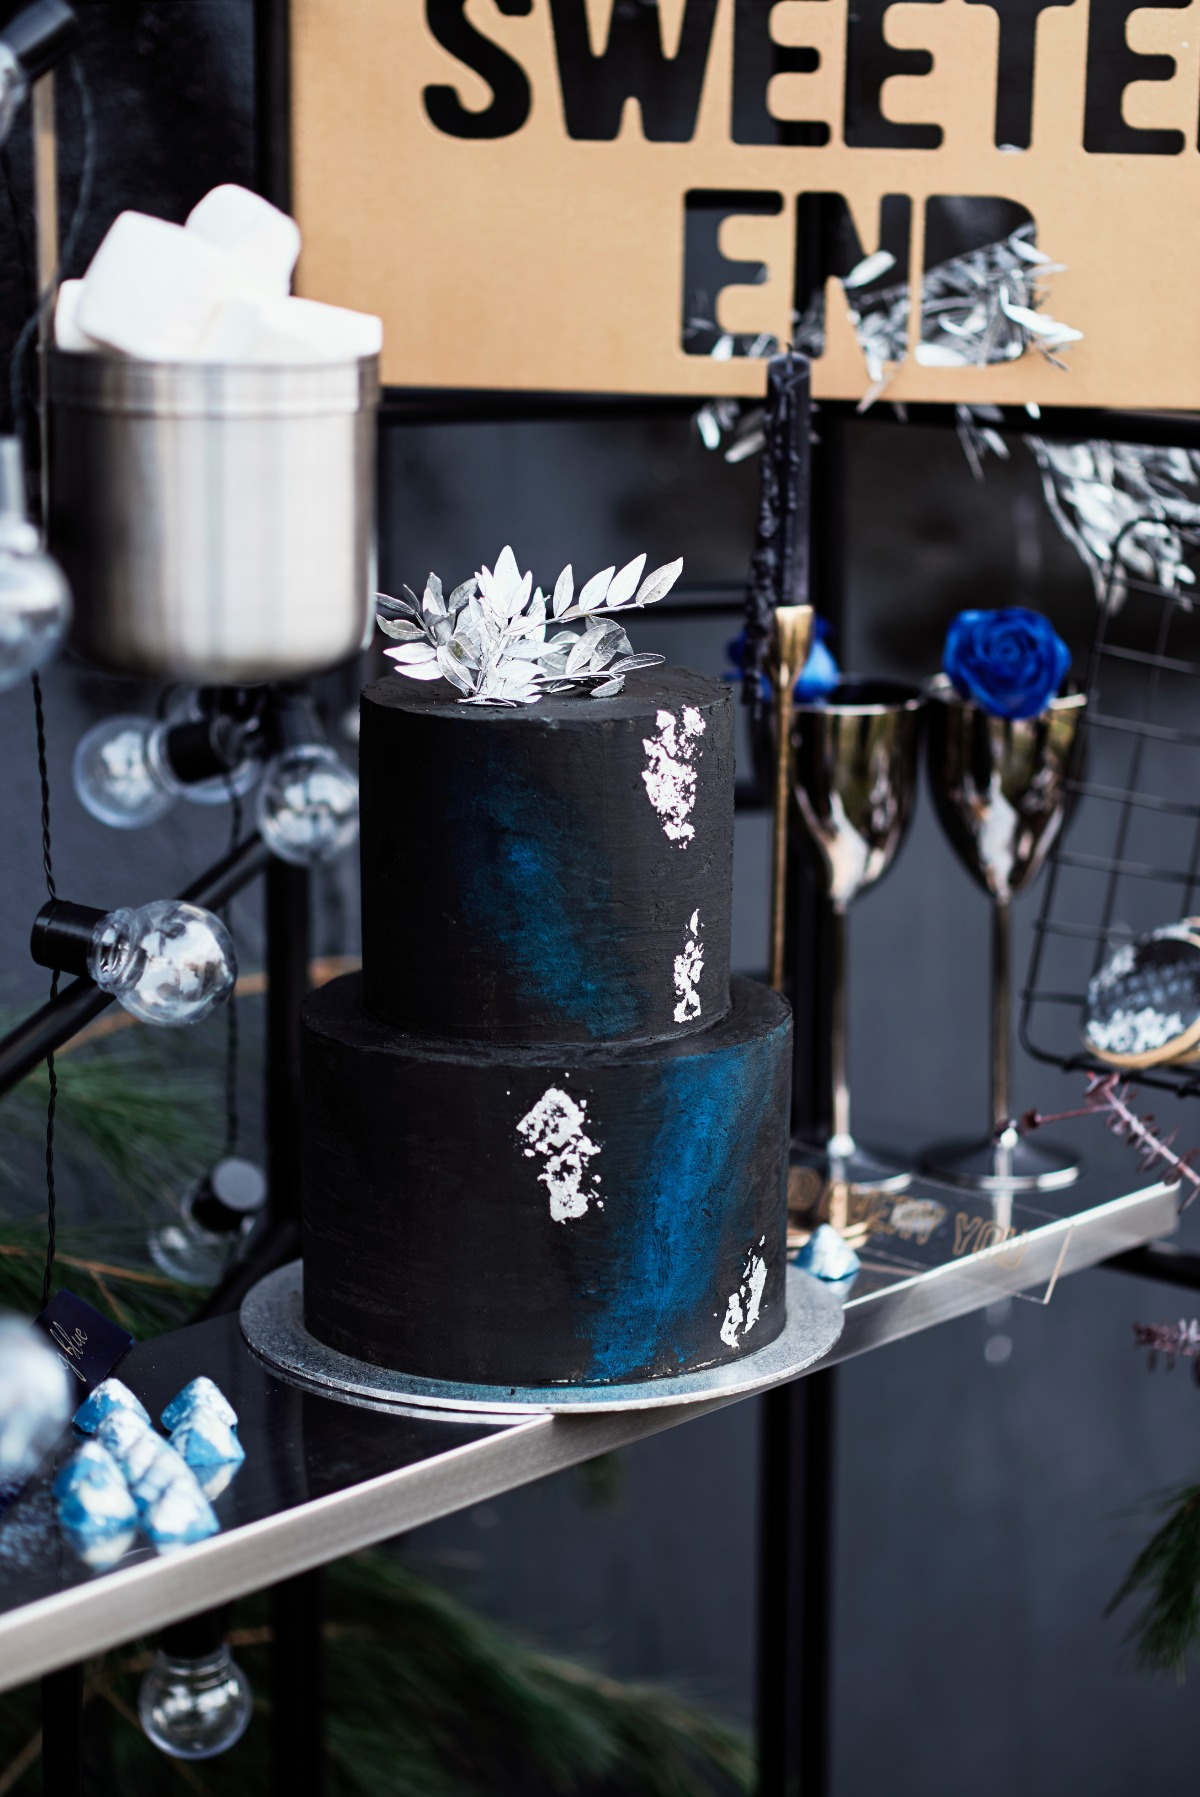 Edgy wedding cake